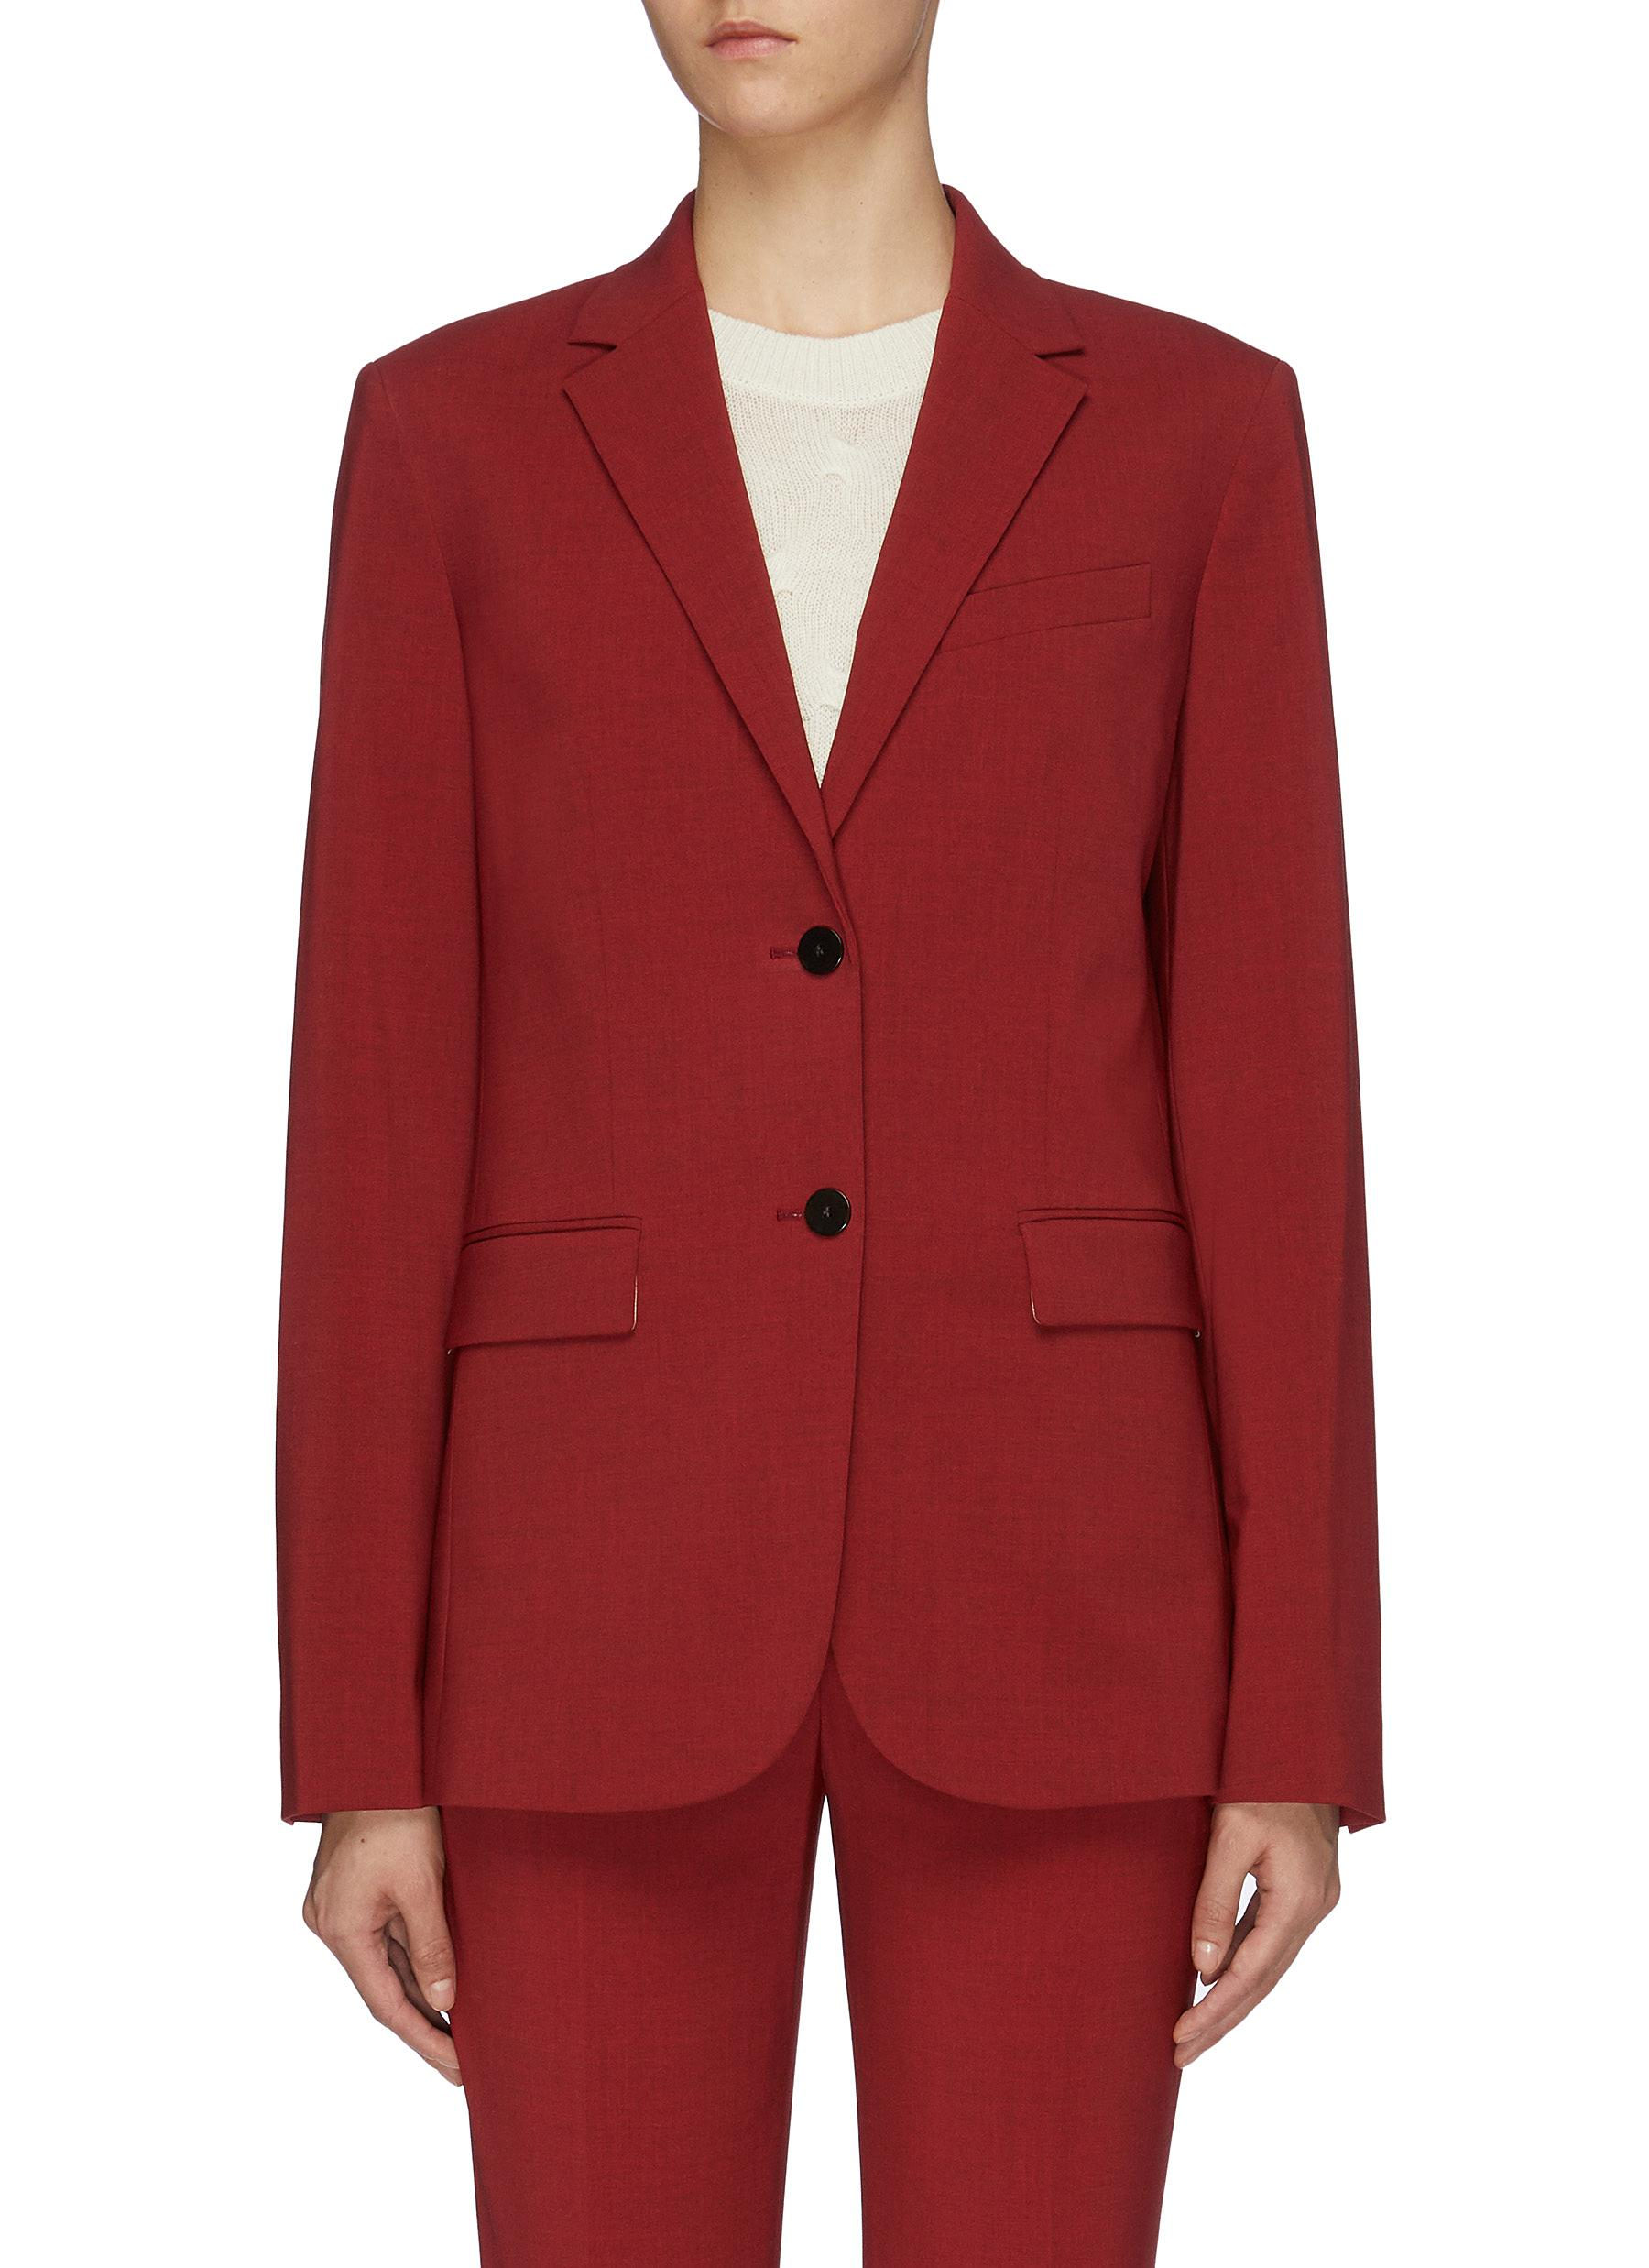 Notched lapel virgin wool blazer by Theory